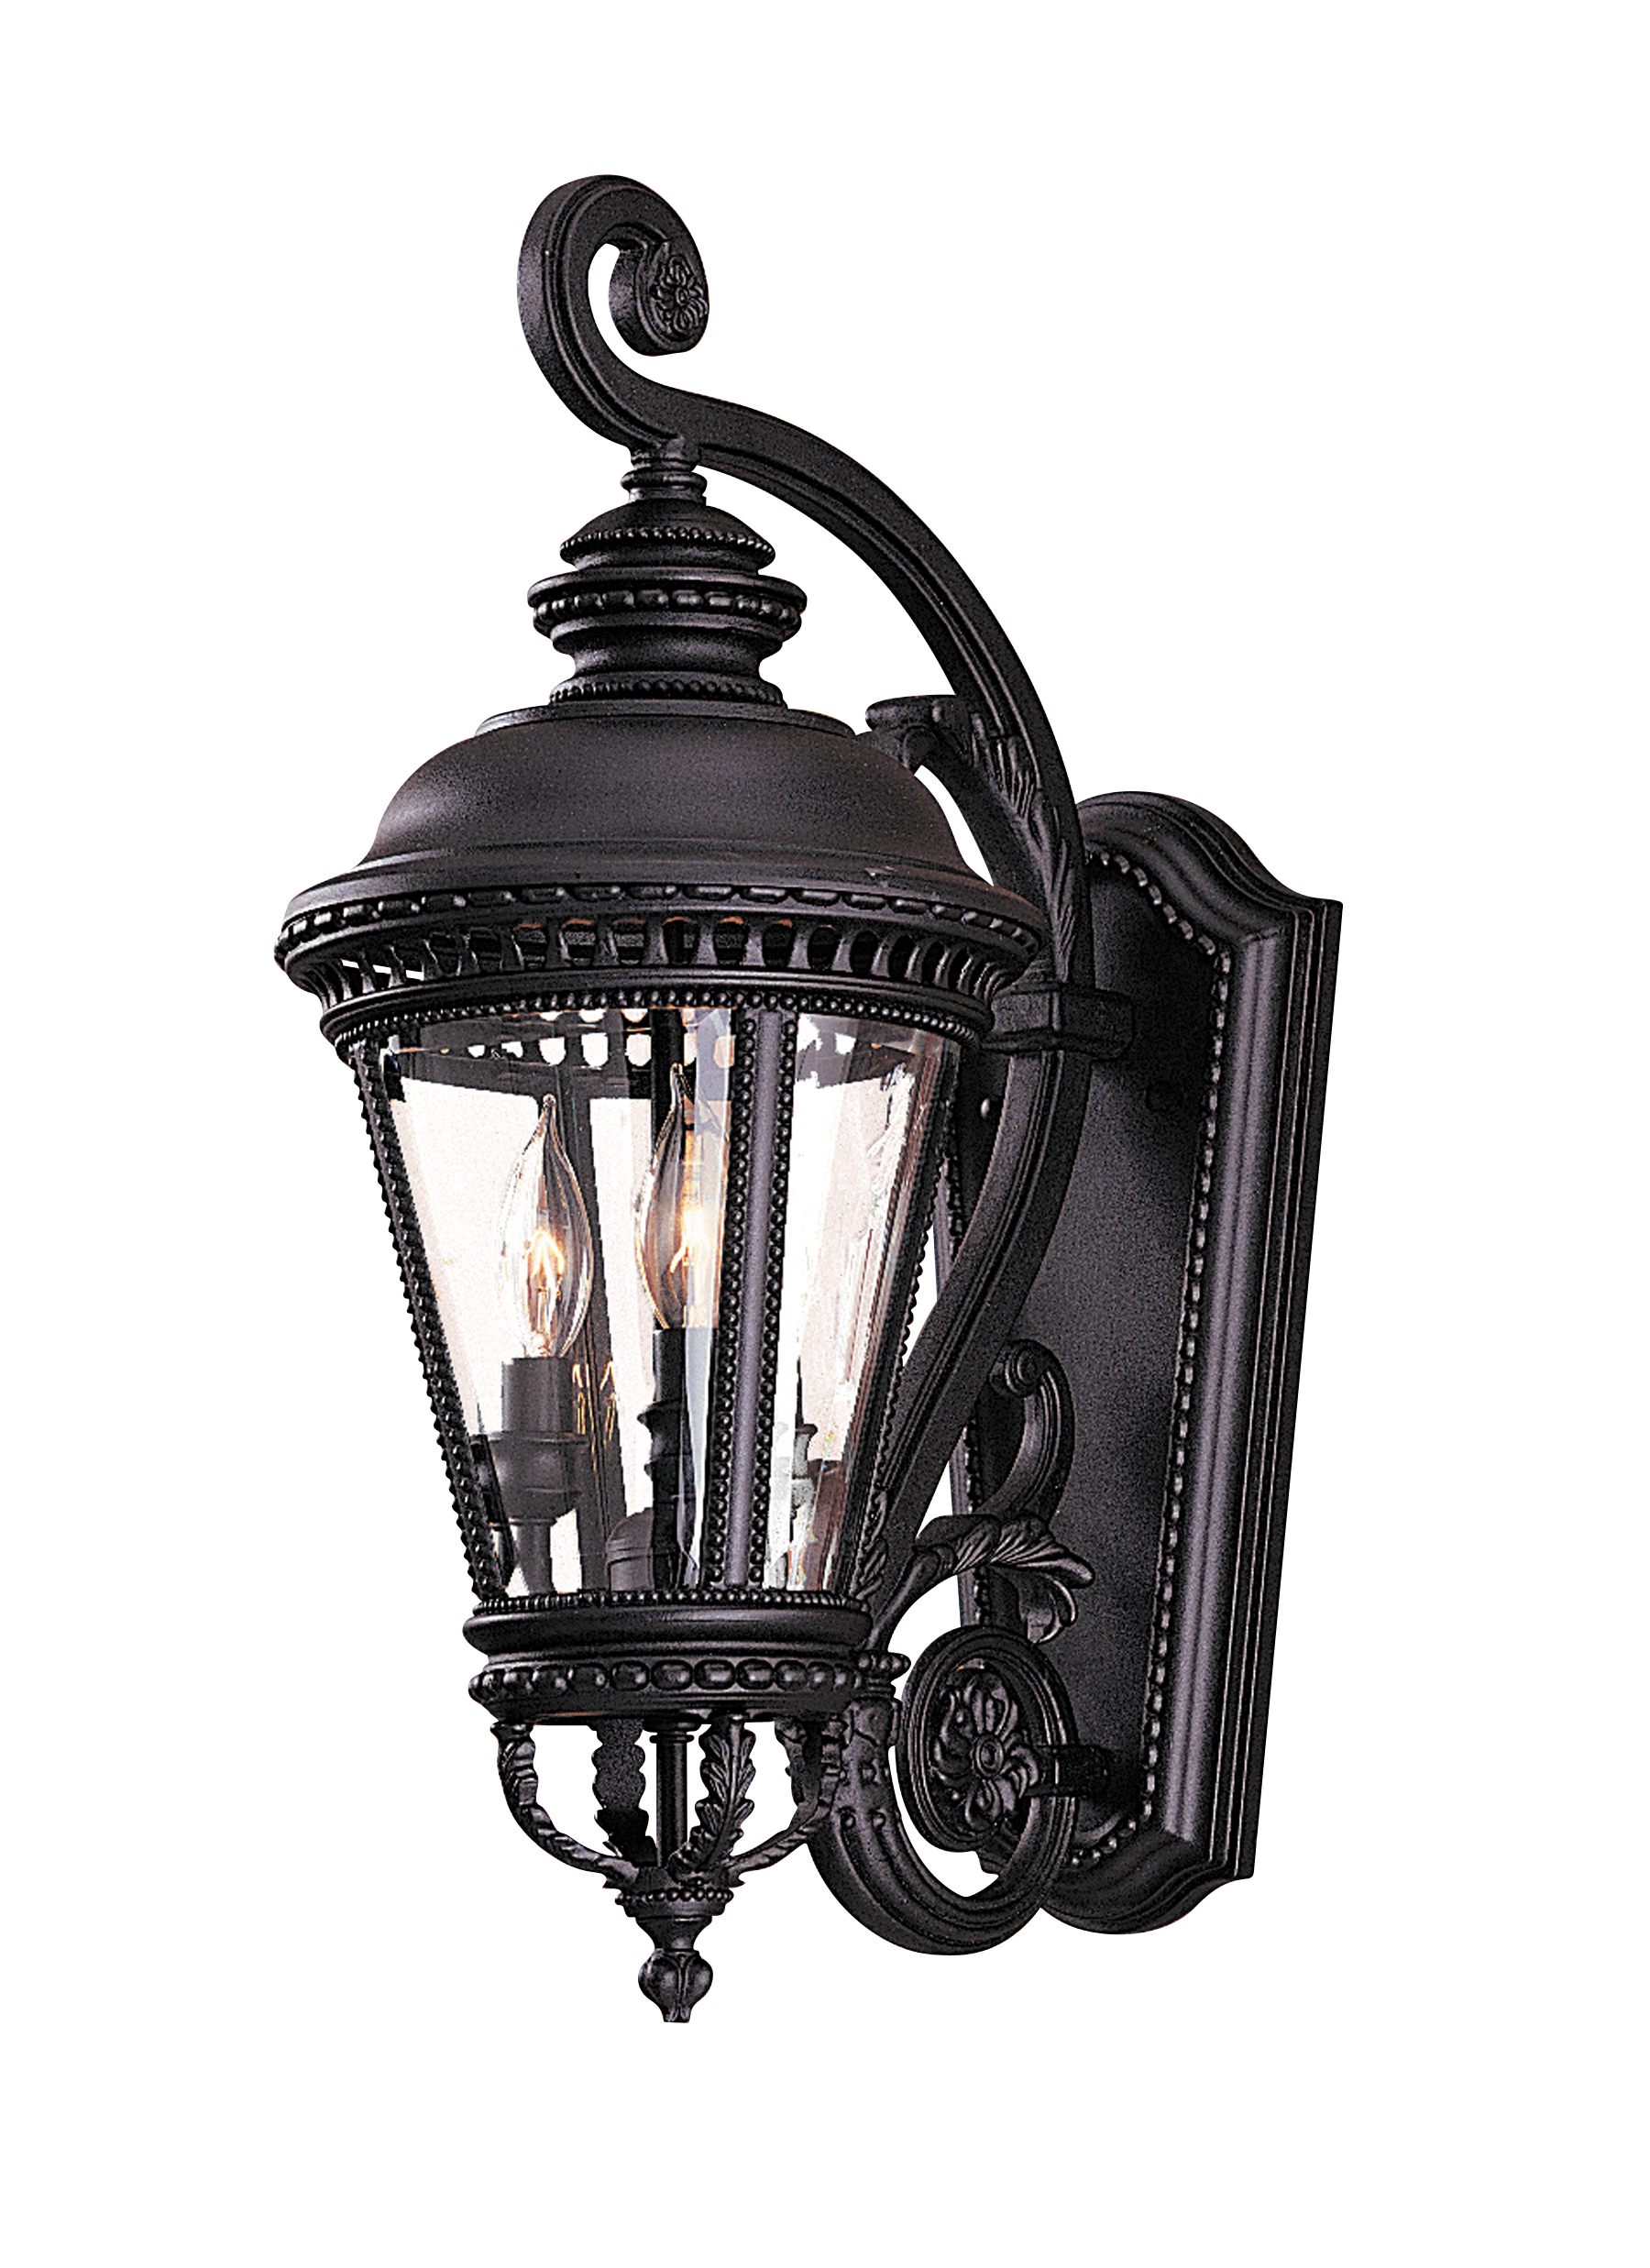 Murray Feiss Outdoor Lighting Murray feiss outdoor lighting outdoor designs murray feiss outdoor lights craftsman mission 1 light post loading zoom ol1901bk 3 light wall lantern black workwithnaturefo